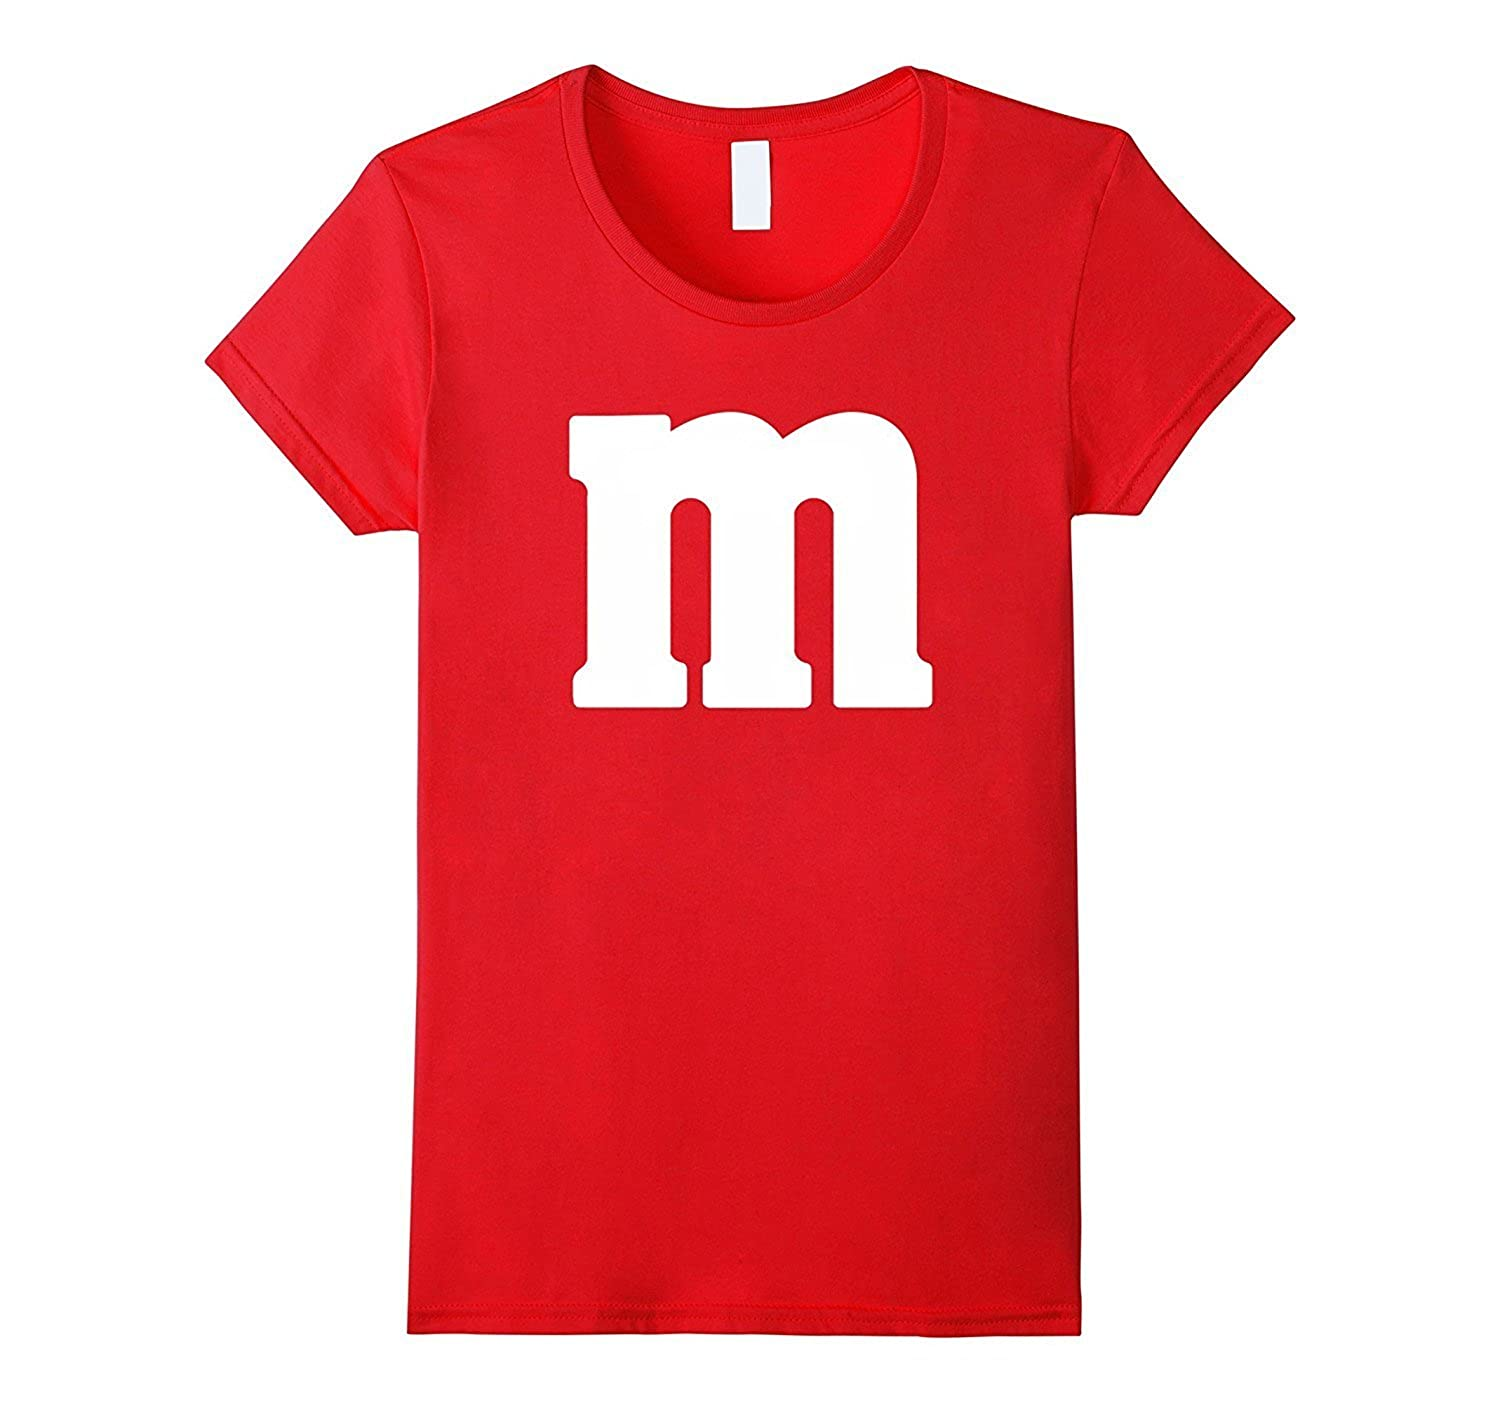 Superior Apparel M Womens T-Shirt Tee